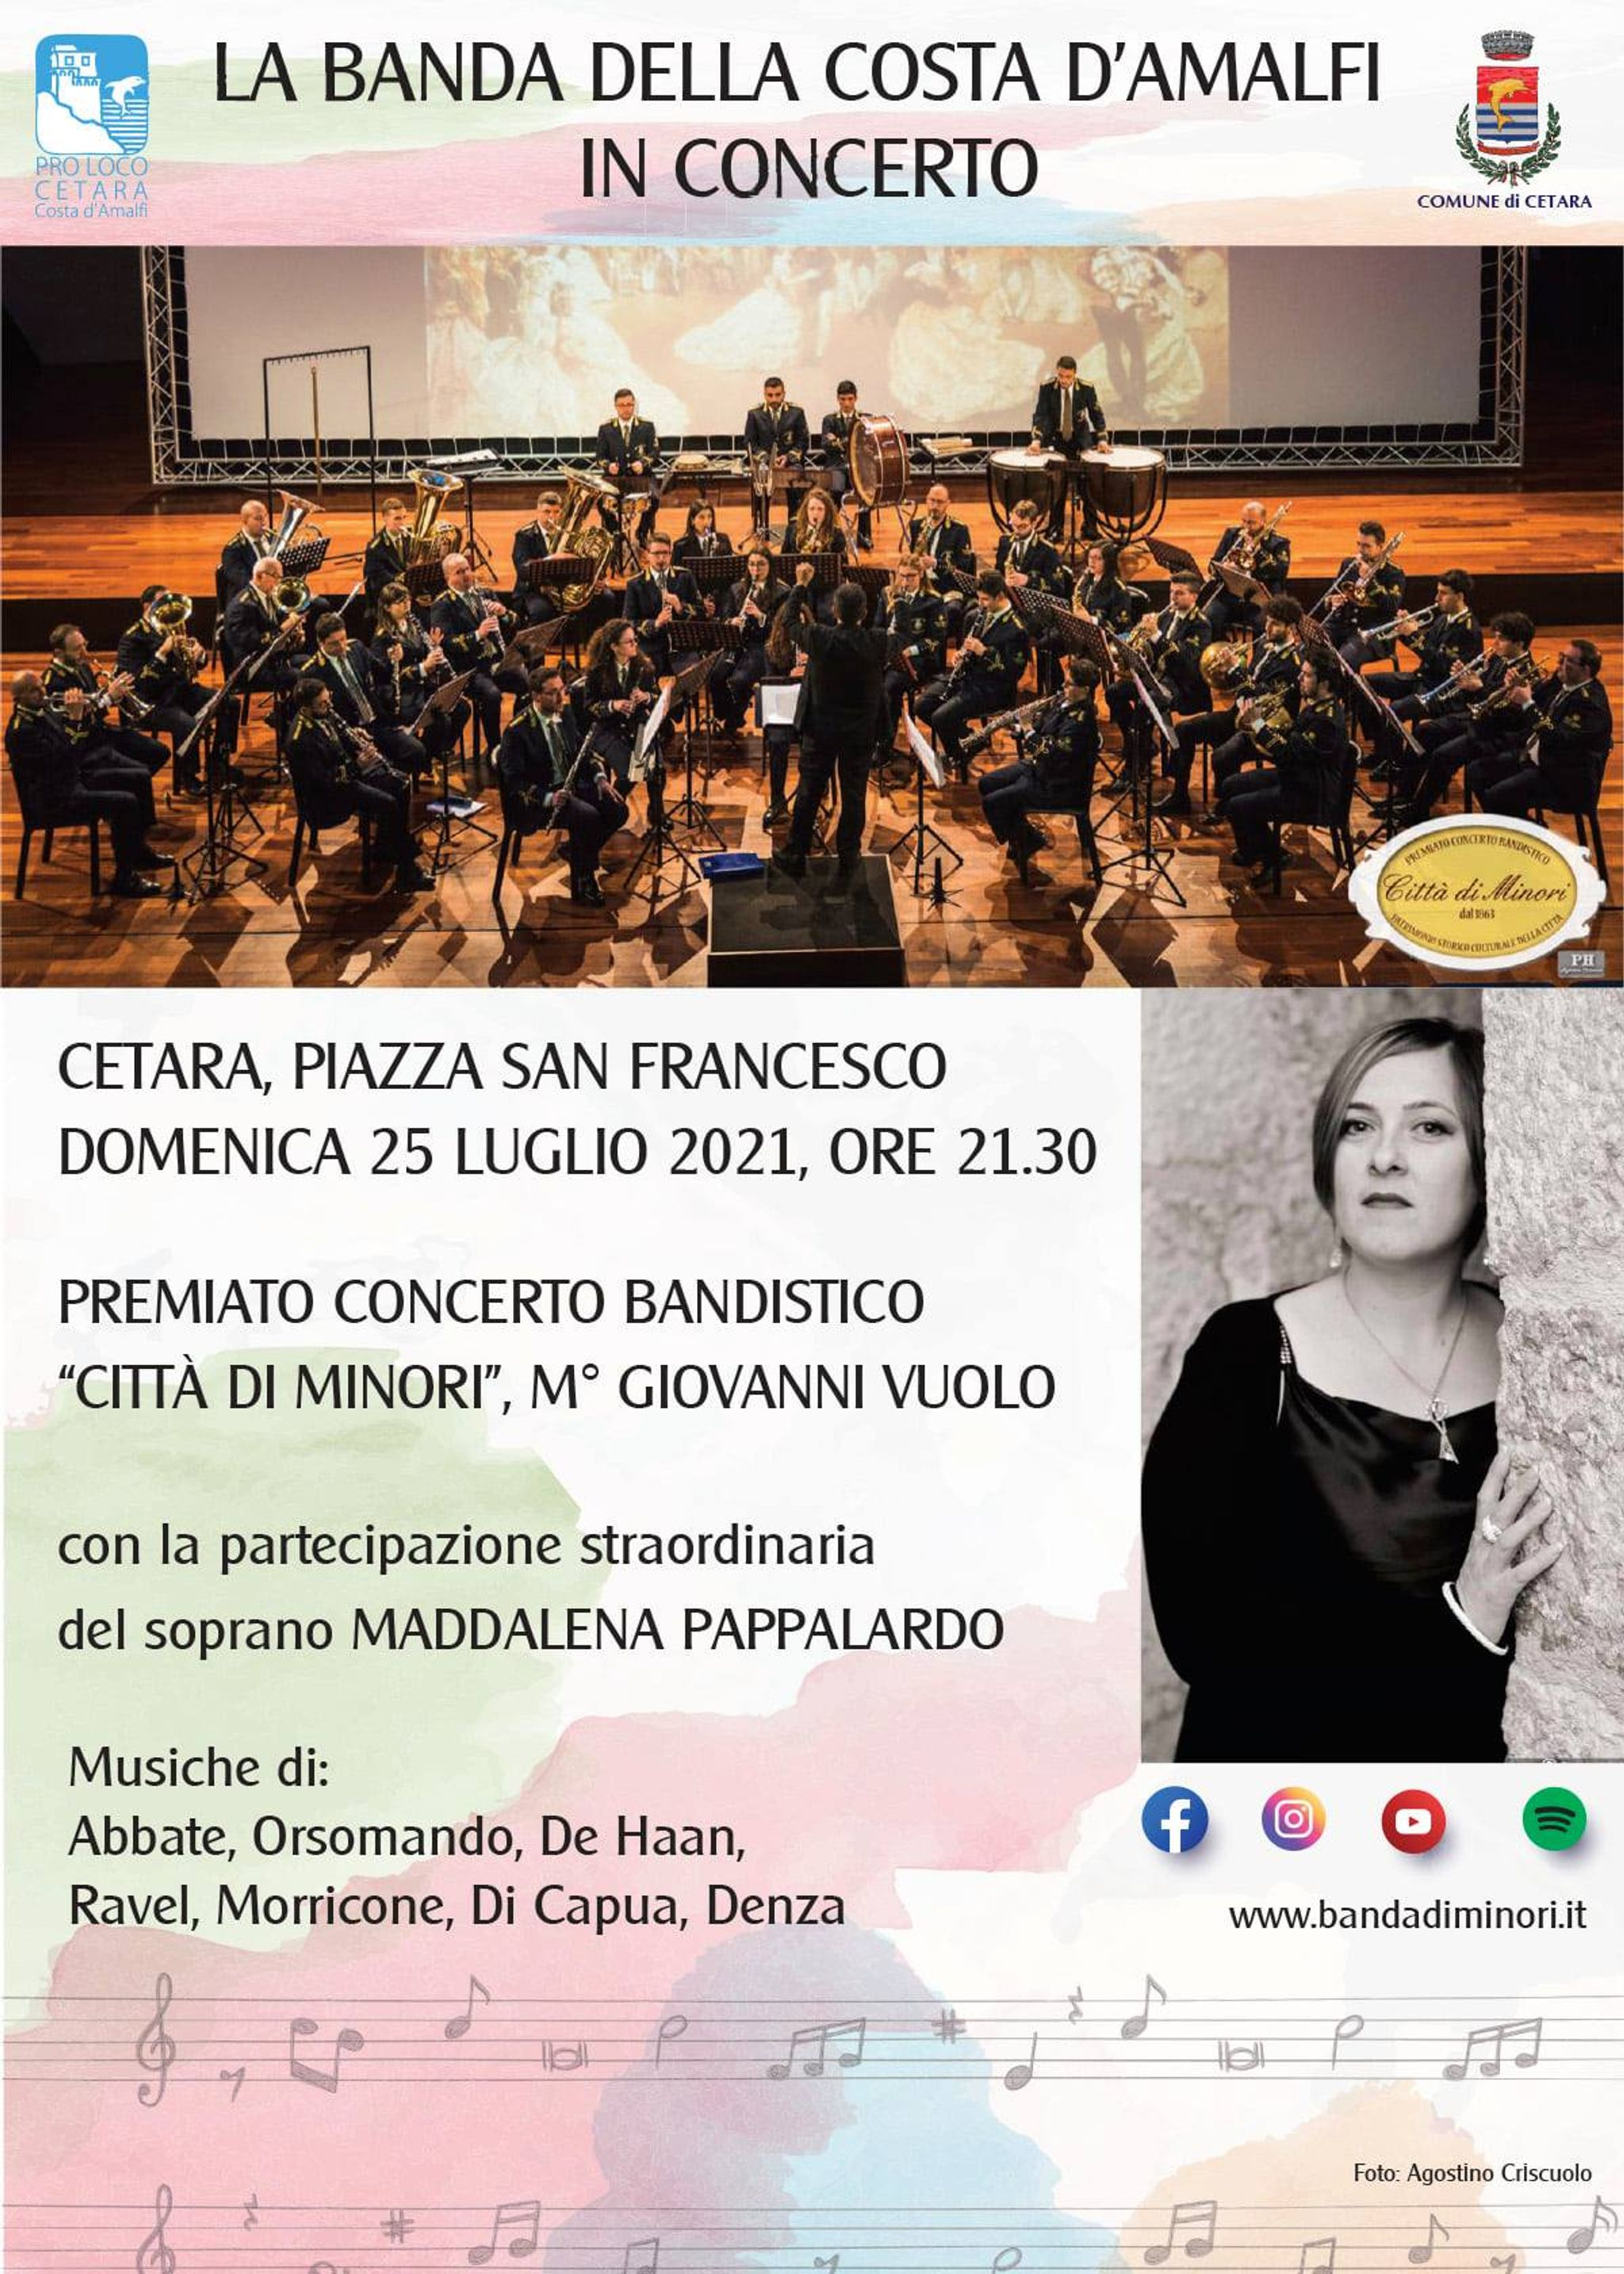 The Band of the Amalfi Coast in concert